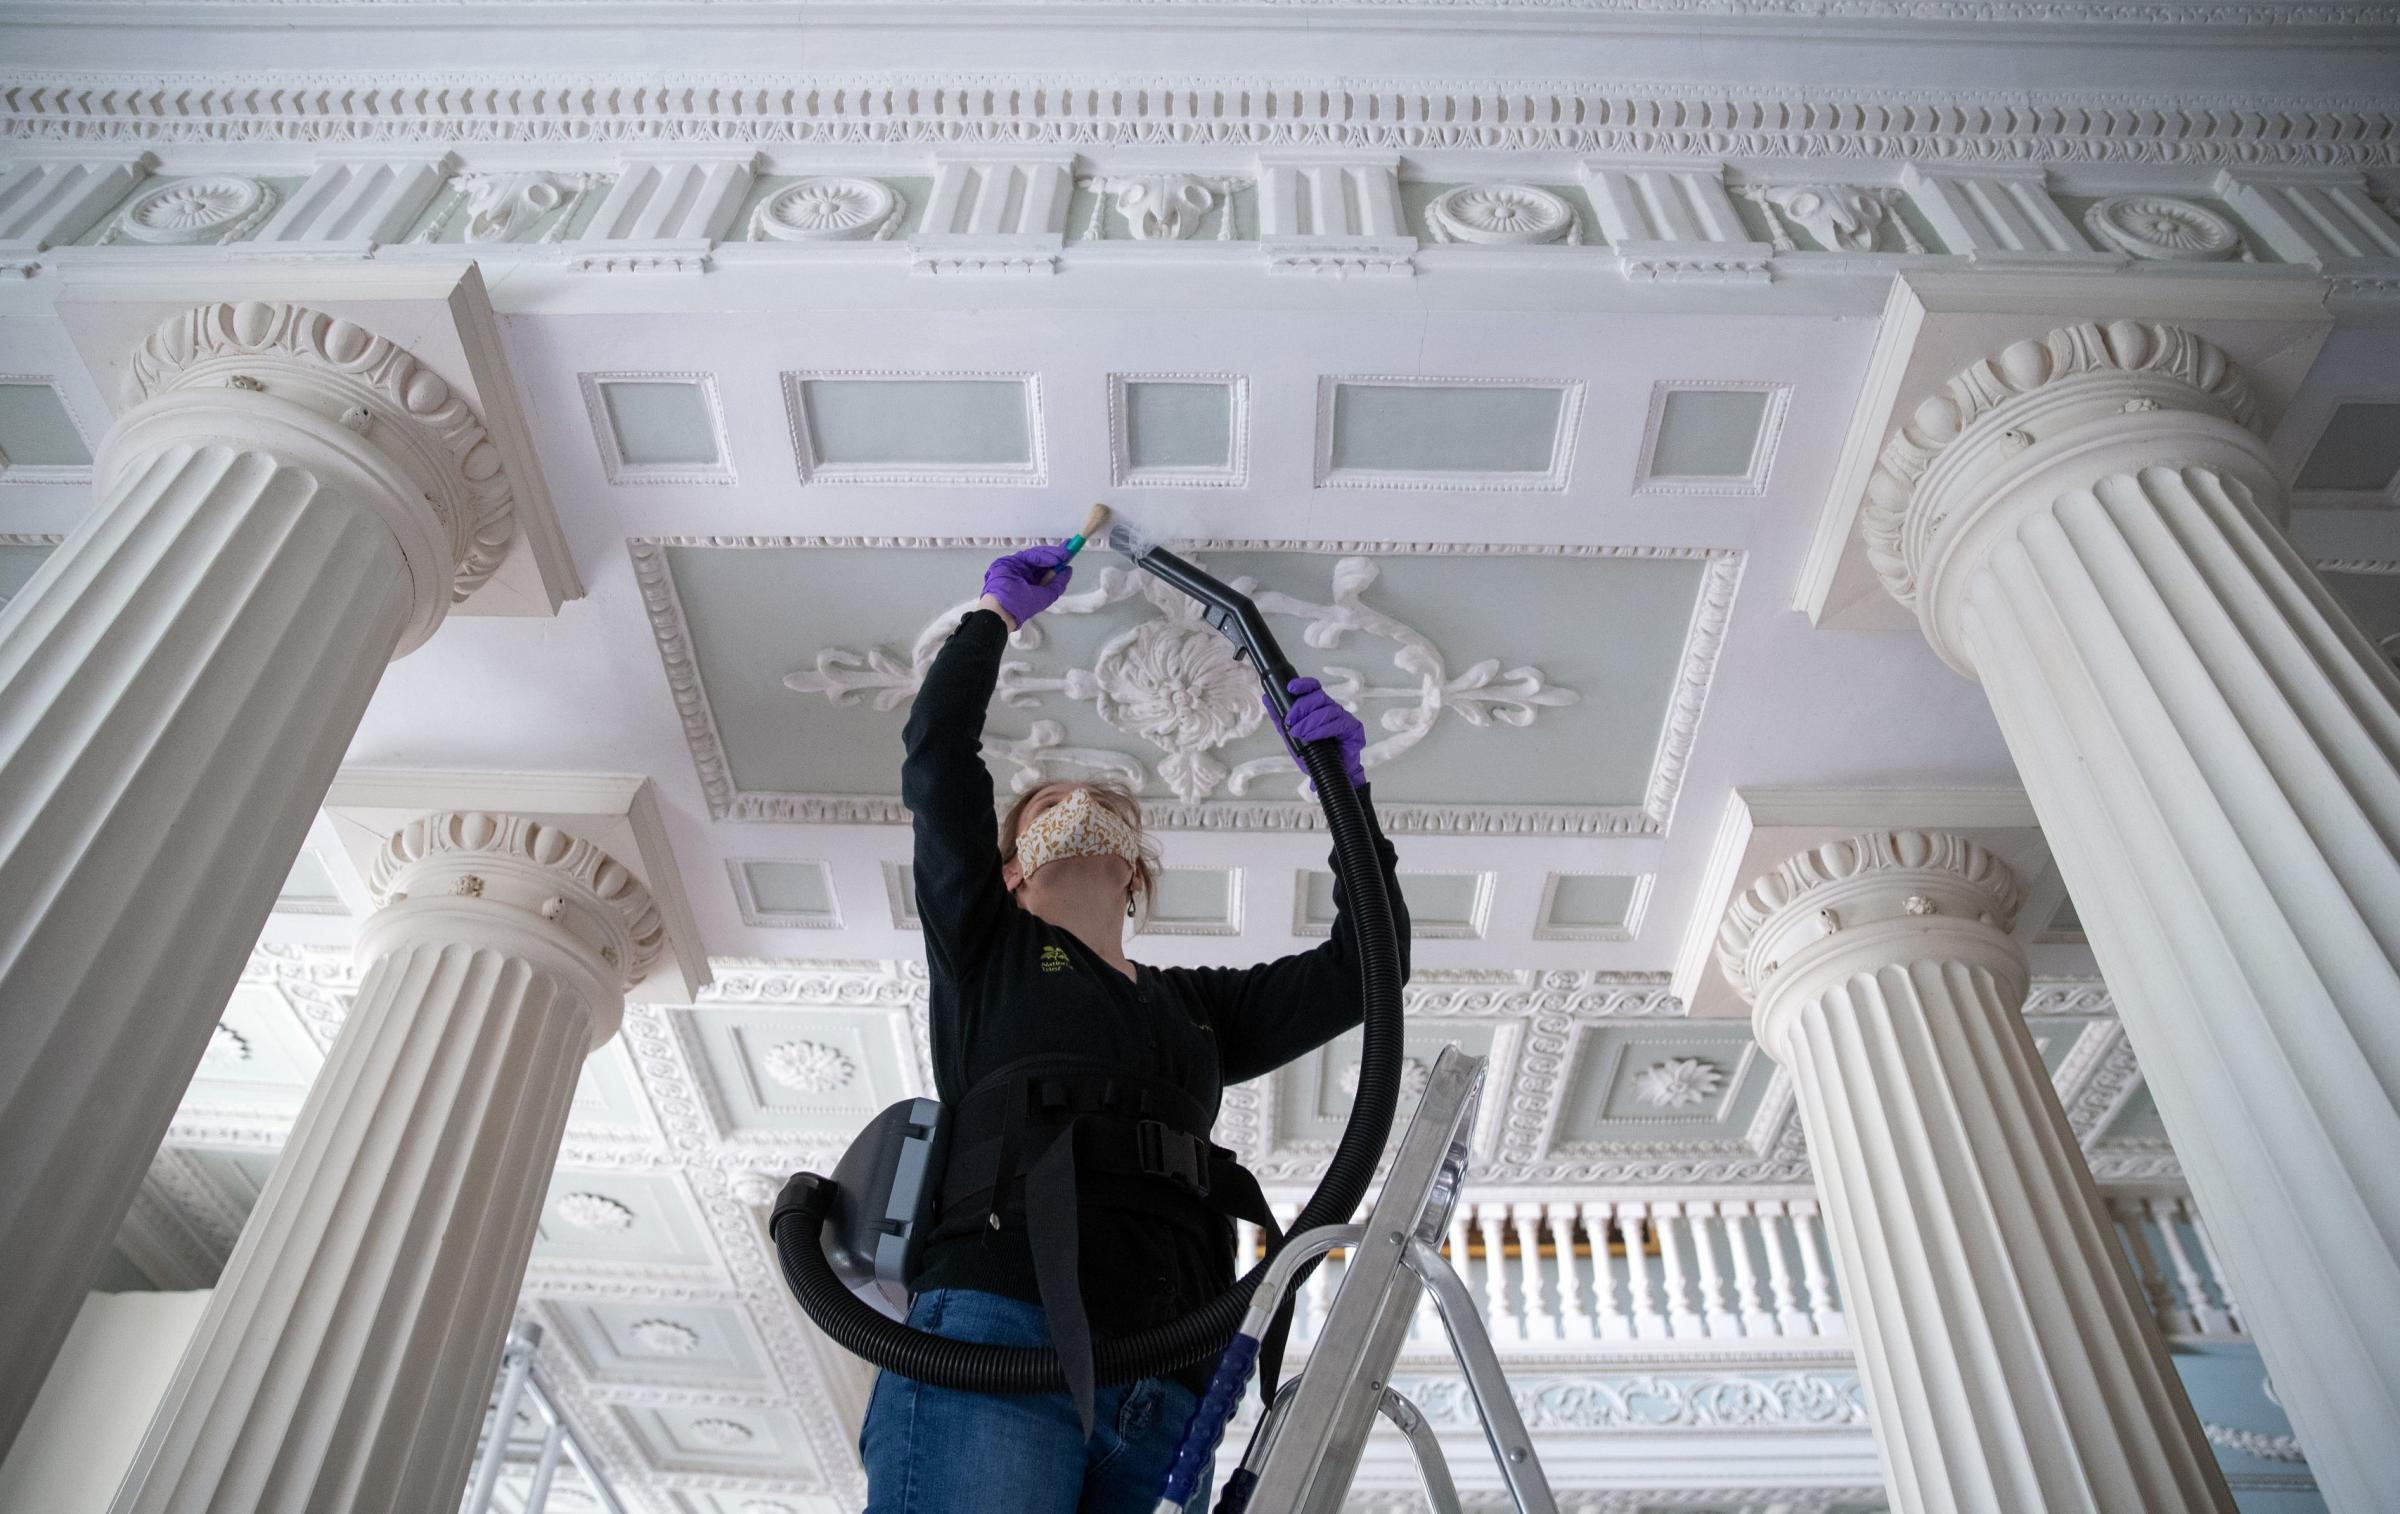 A collections assistant cleans the ceiling of the 18th Century Staircase Hall at the National Trust's The Vyne, a 16th Century estate and country house near to Basingstoke in Hampshire Picture: ANDREW MATTHEWS/PA